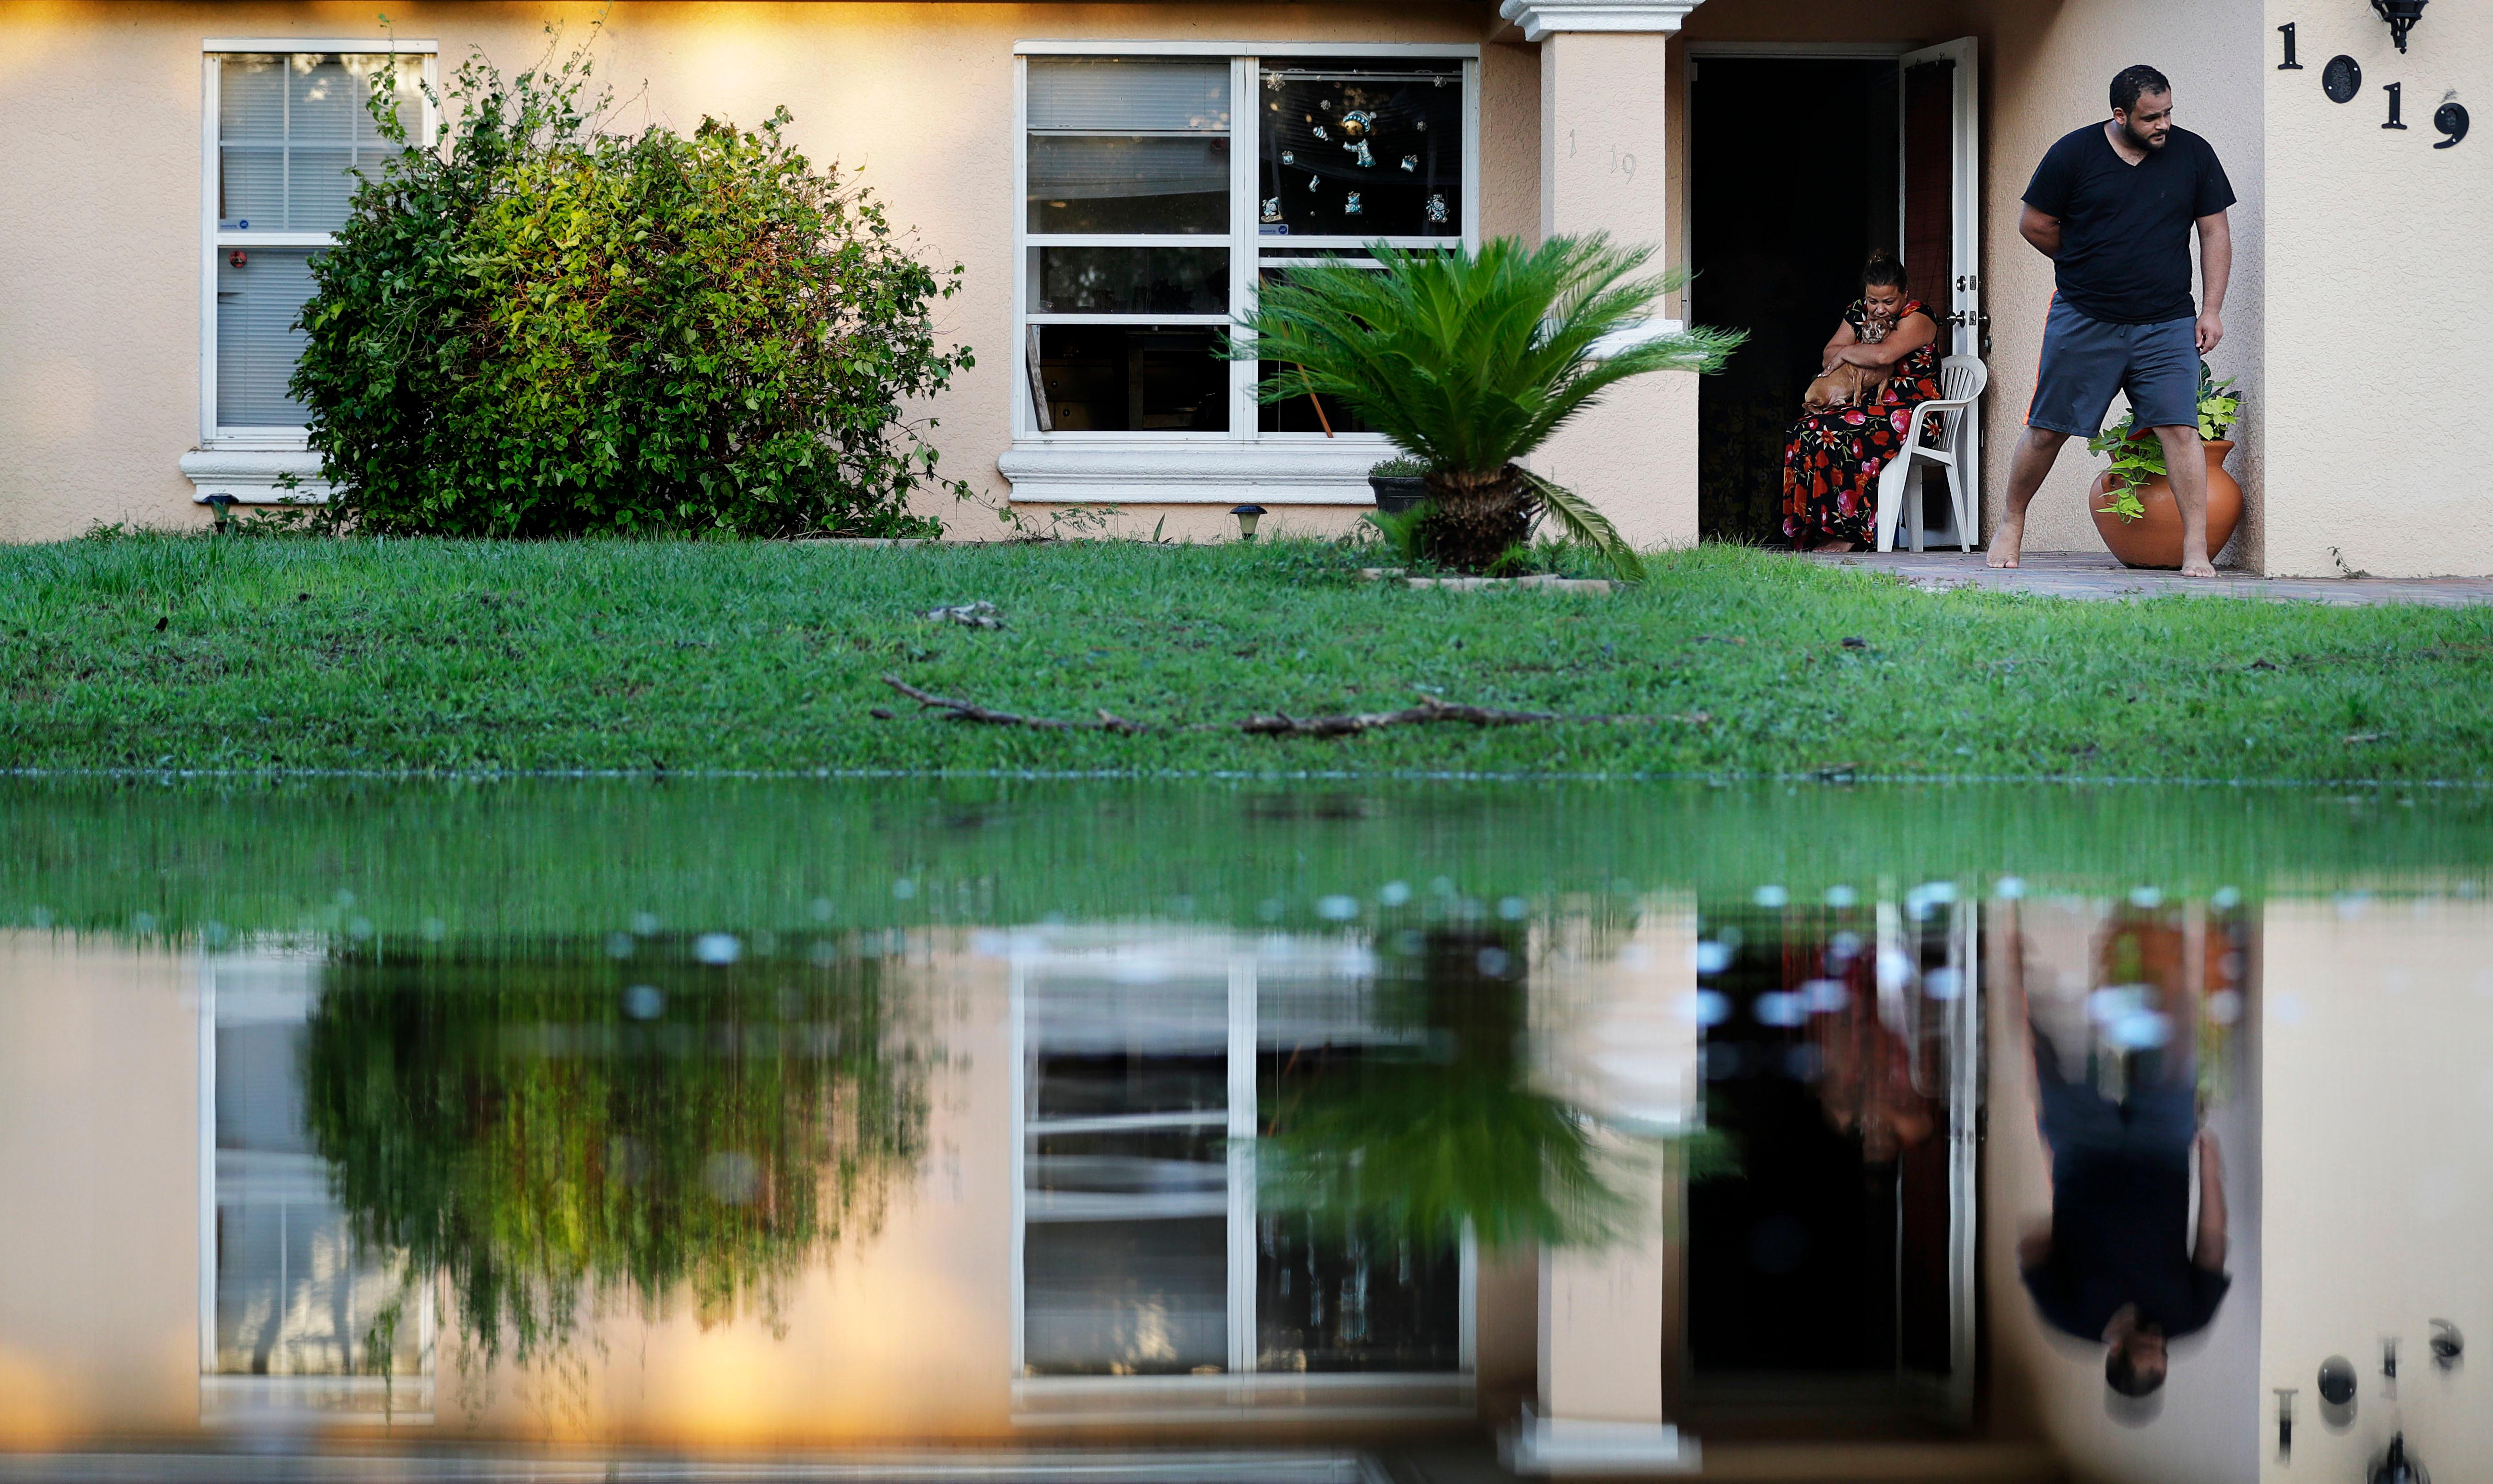 "Sandra Pagan, left, escapes the heat inside her home with her dog Goldo and nephew Misael Fernandez after Hurricane Irma flooded their neighborhood leaving them without power and impassable with their cars in Fort Myers, Fla., Tuesday, Sept. 12, 2017. ""It's unbearable,"" said Pagan who rode out the storm in the home with her family. ""We can't sleep at all. It's so hot."" (AP Photo/David Goldman)"